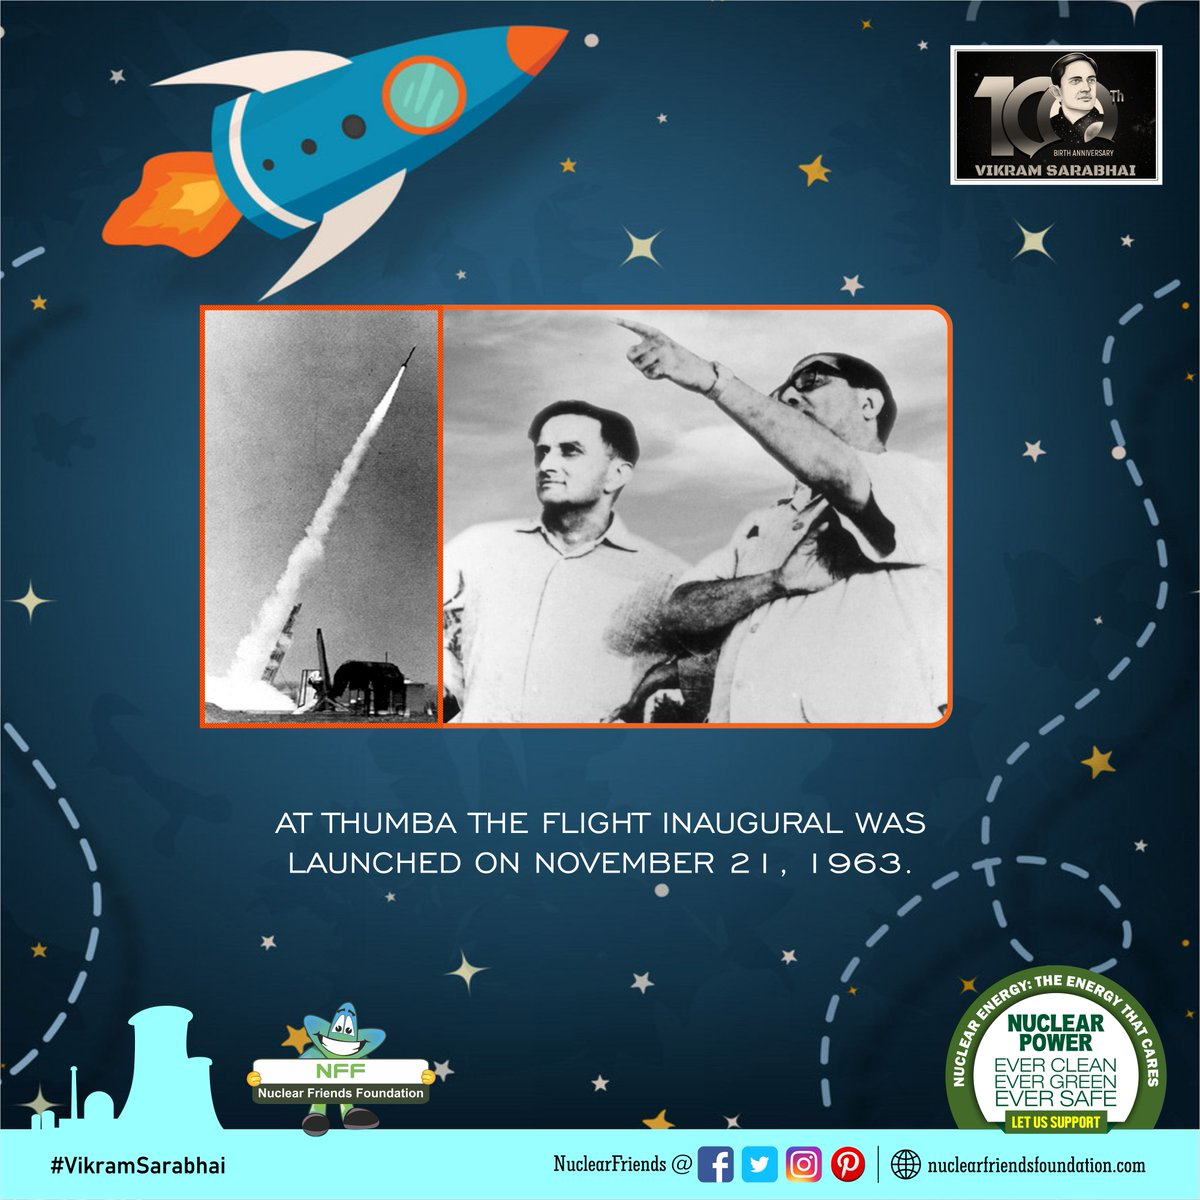 At THUMBA the flight inaugural  was launched on NOVEMBER 21, 1963.  Reach us @ http://nuclearfriendsfoundation.com  #NuclearPower #NuclearEnergy #Evergreen #NuclearFacts #WeekendVibes #VikramSarabhai  @iaeaorg @W_Nuclear_News  @WorldNuclearUni @WorldNuclear